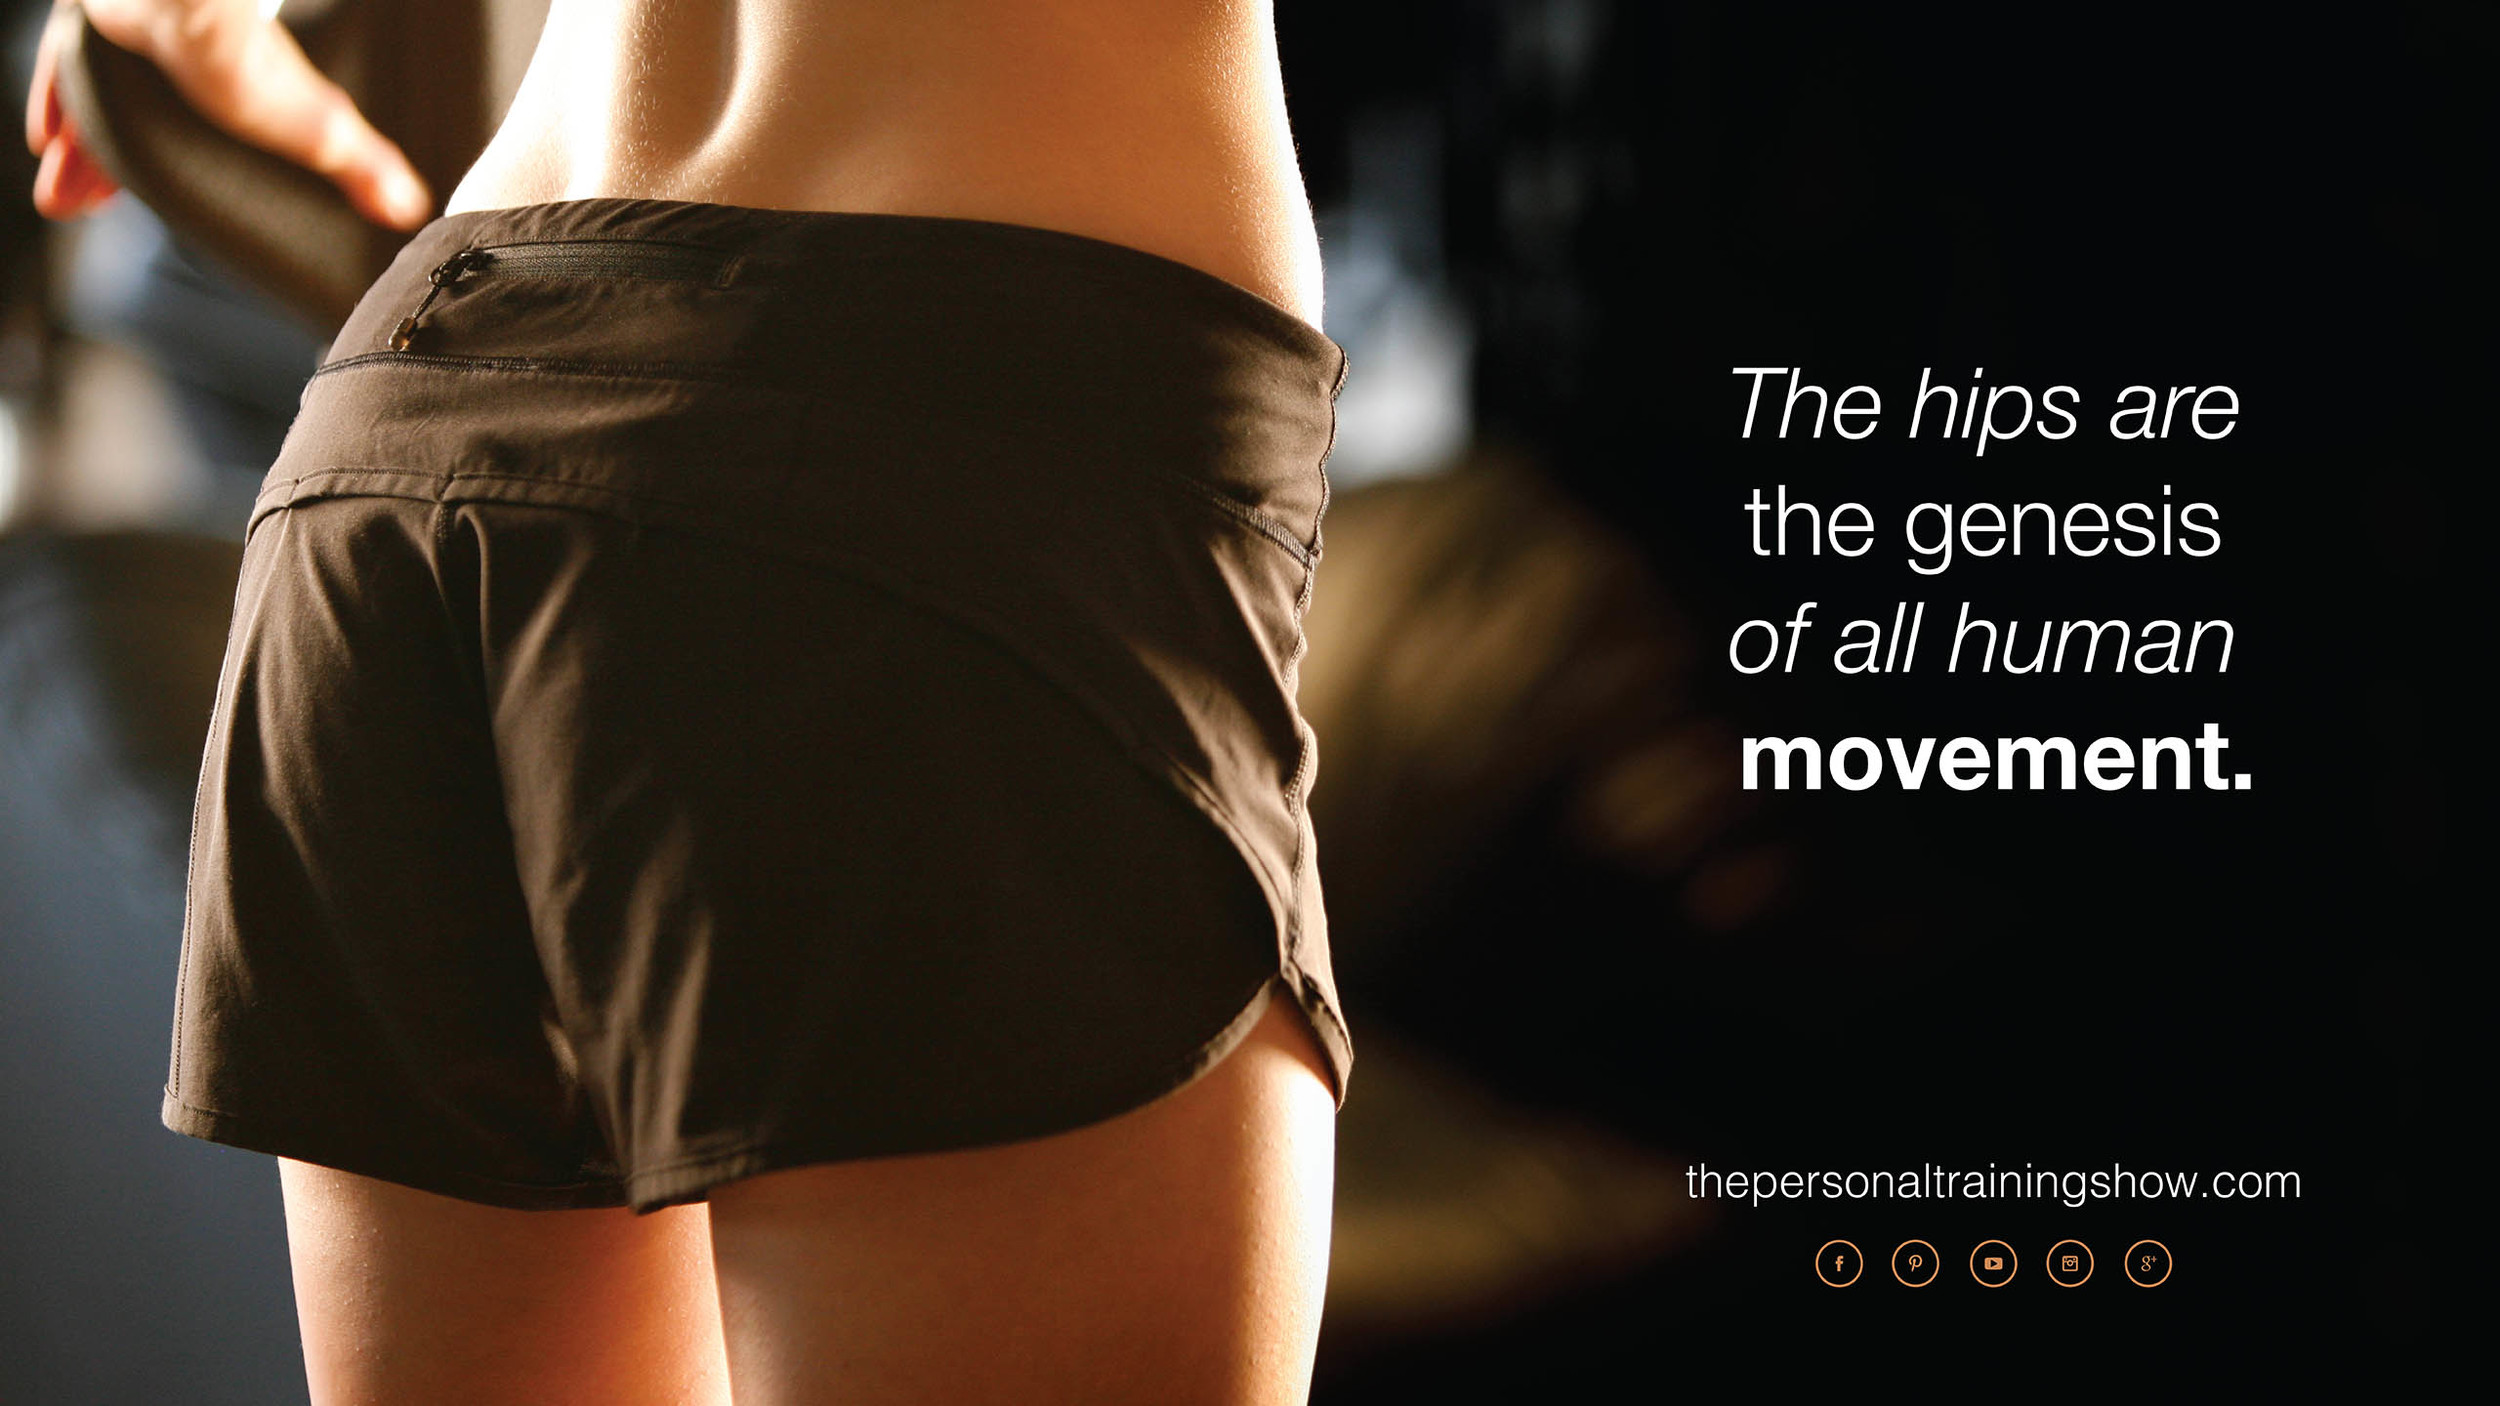 The hips are the genesis of all human movement.